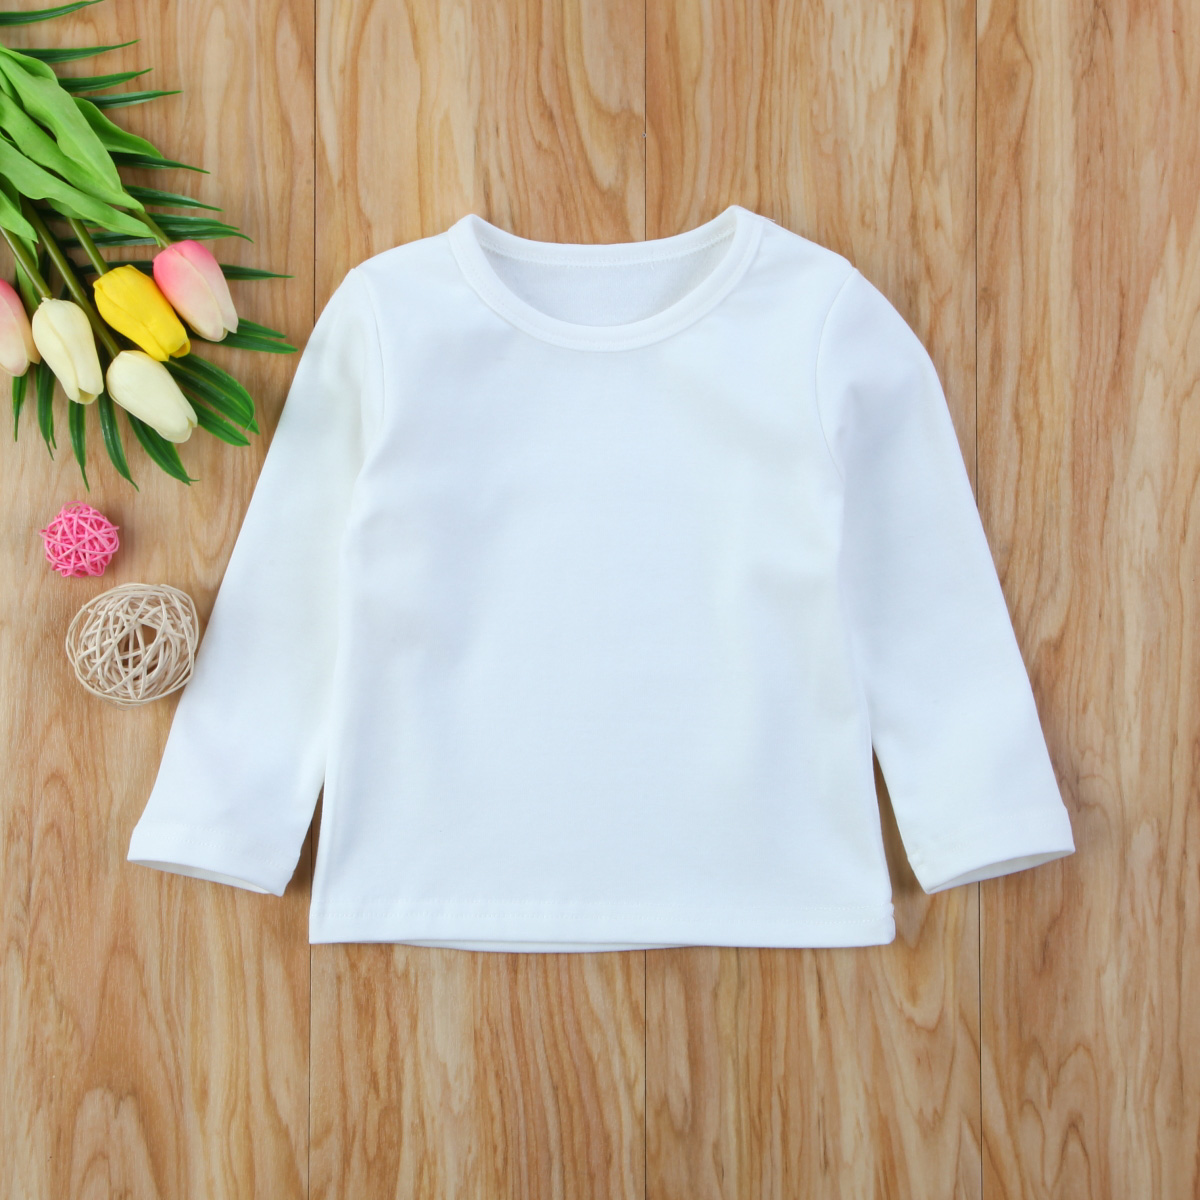 Autumn Cotton Newborn Infant Kids Baby Boys Girls Clothes Solid Cotton Soft Clothing Long Sleeves T-shirt Tops 13